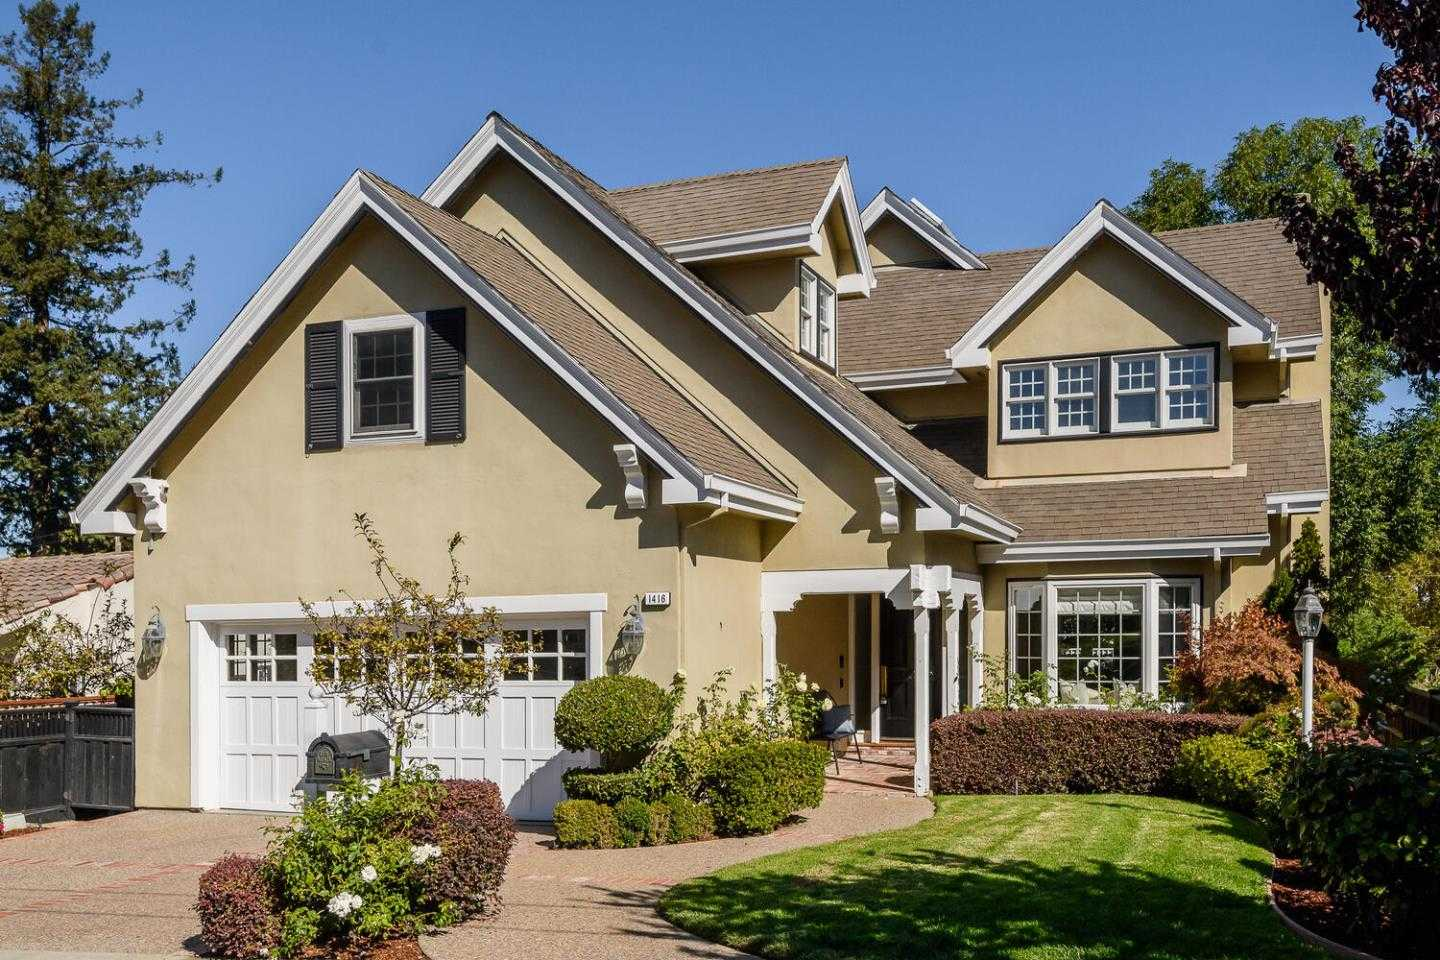 $3,650,000 - 4Br/4Ba -  for Sale in Burlingame